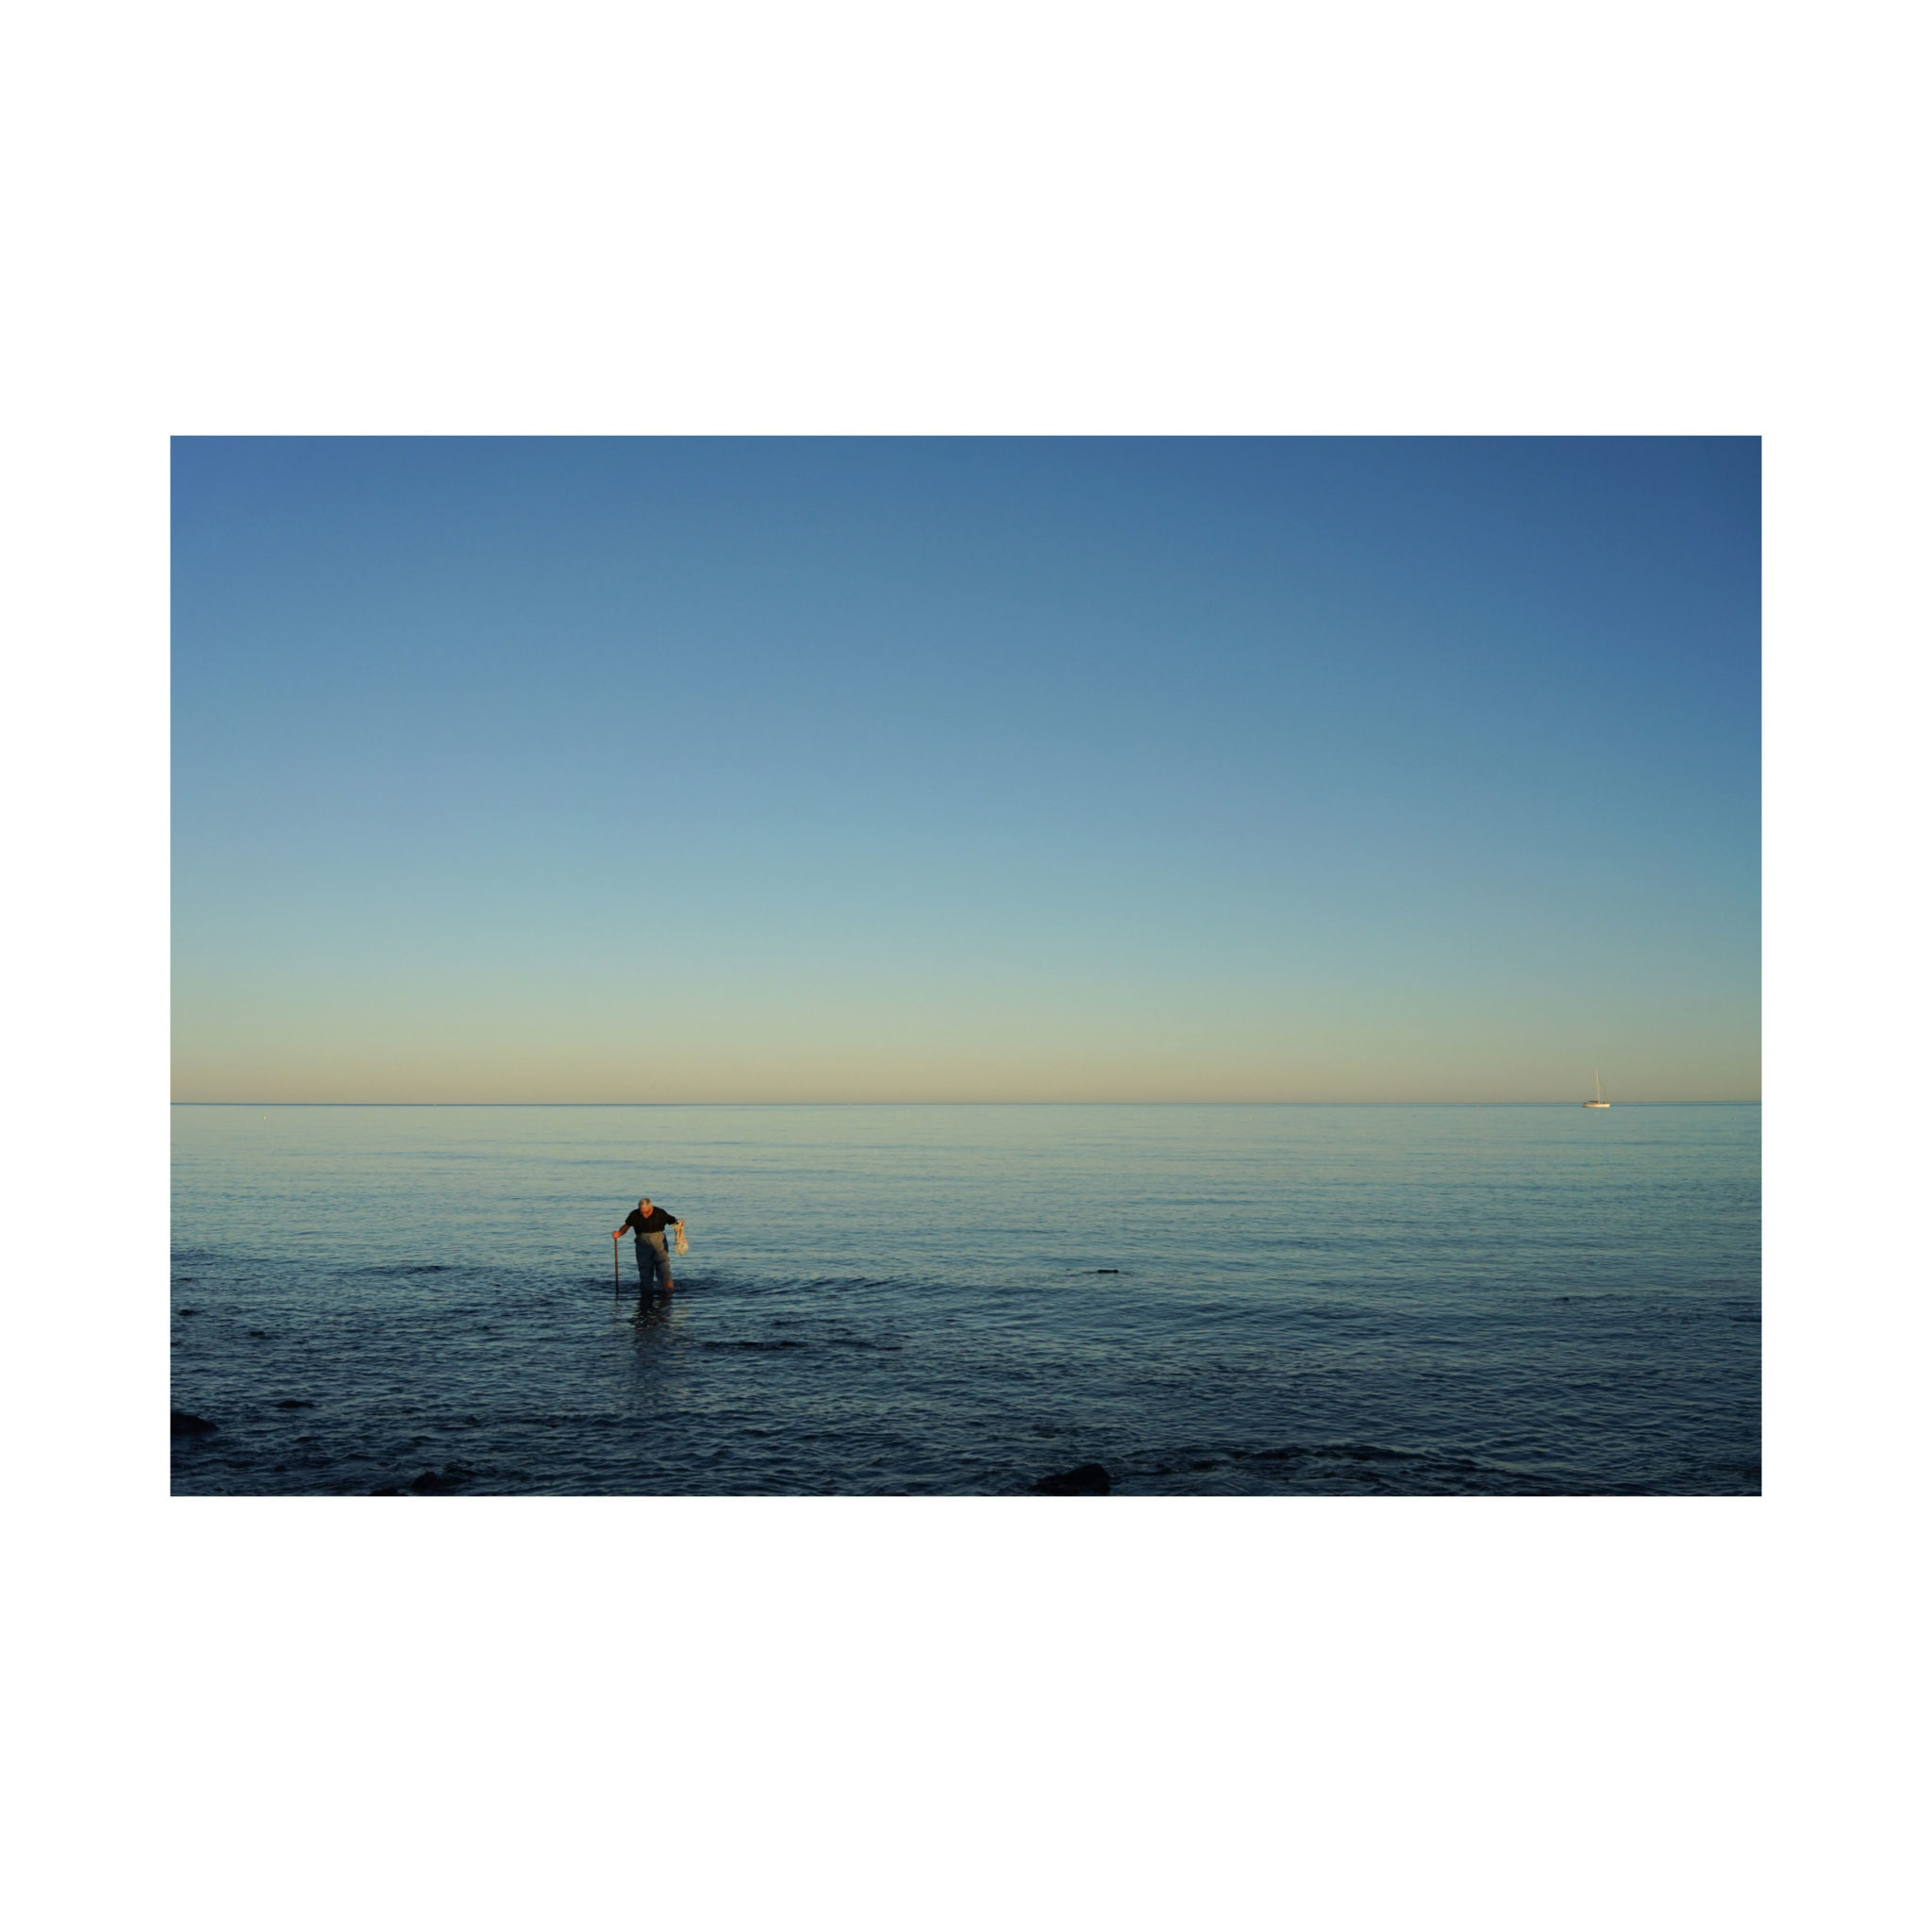 The old man and the sea (2)